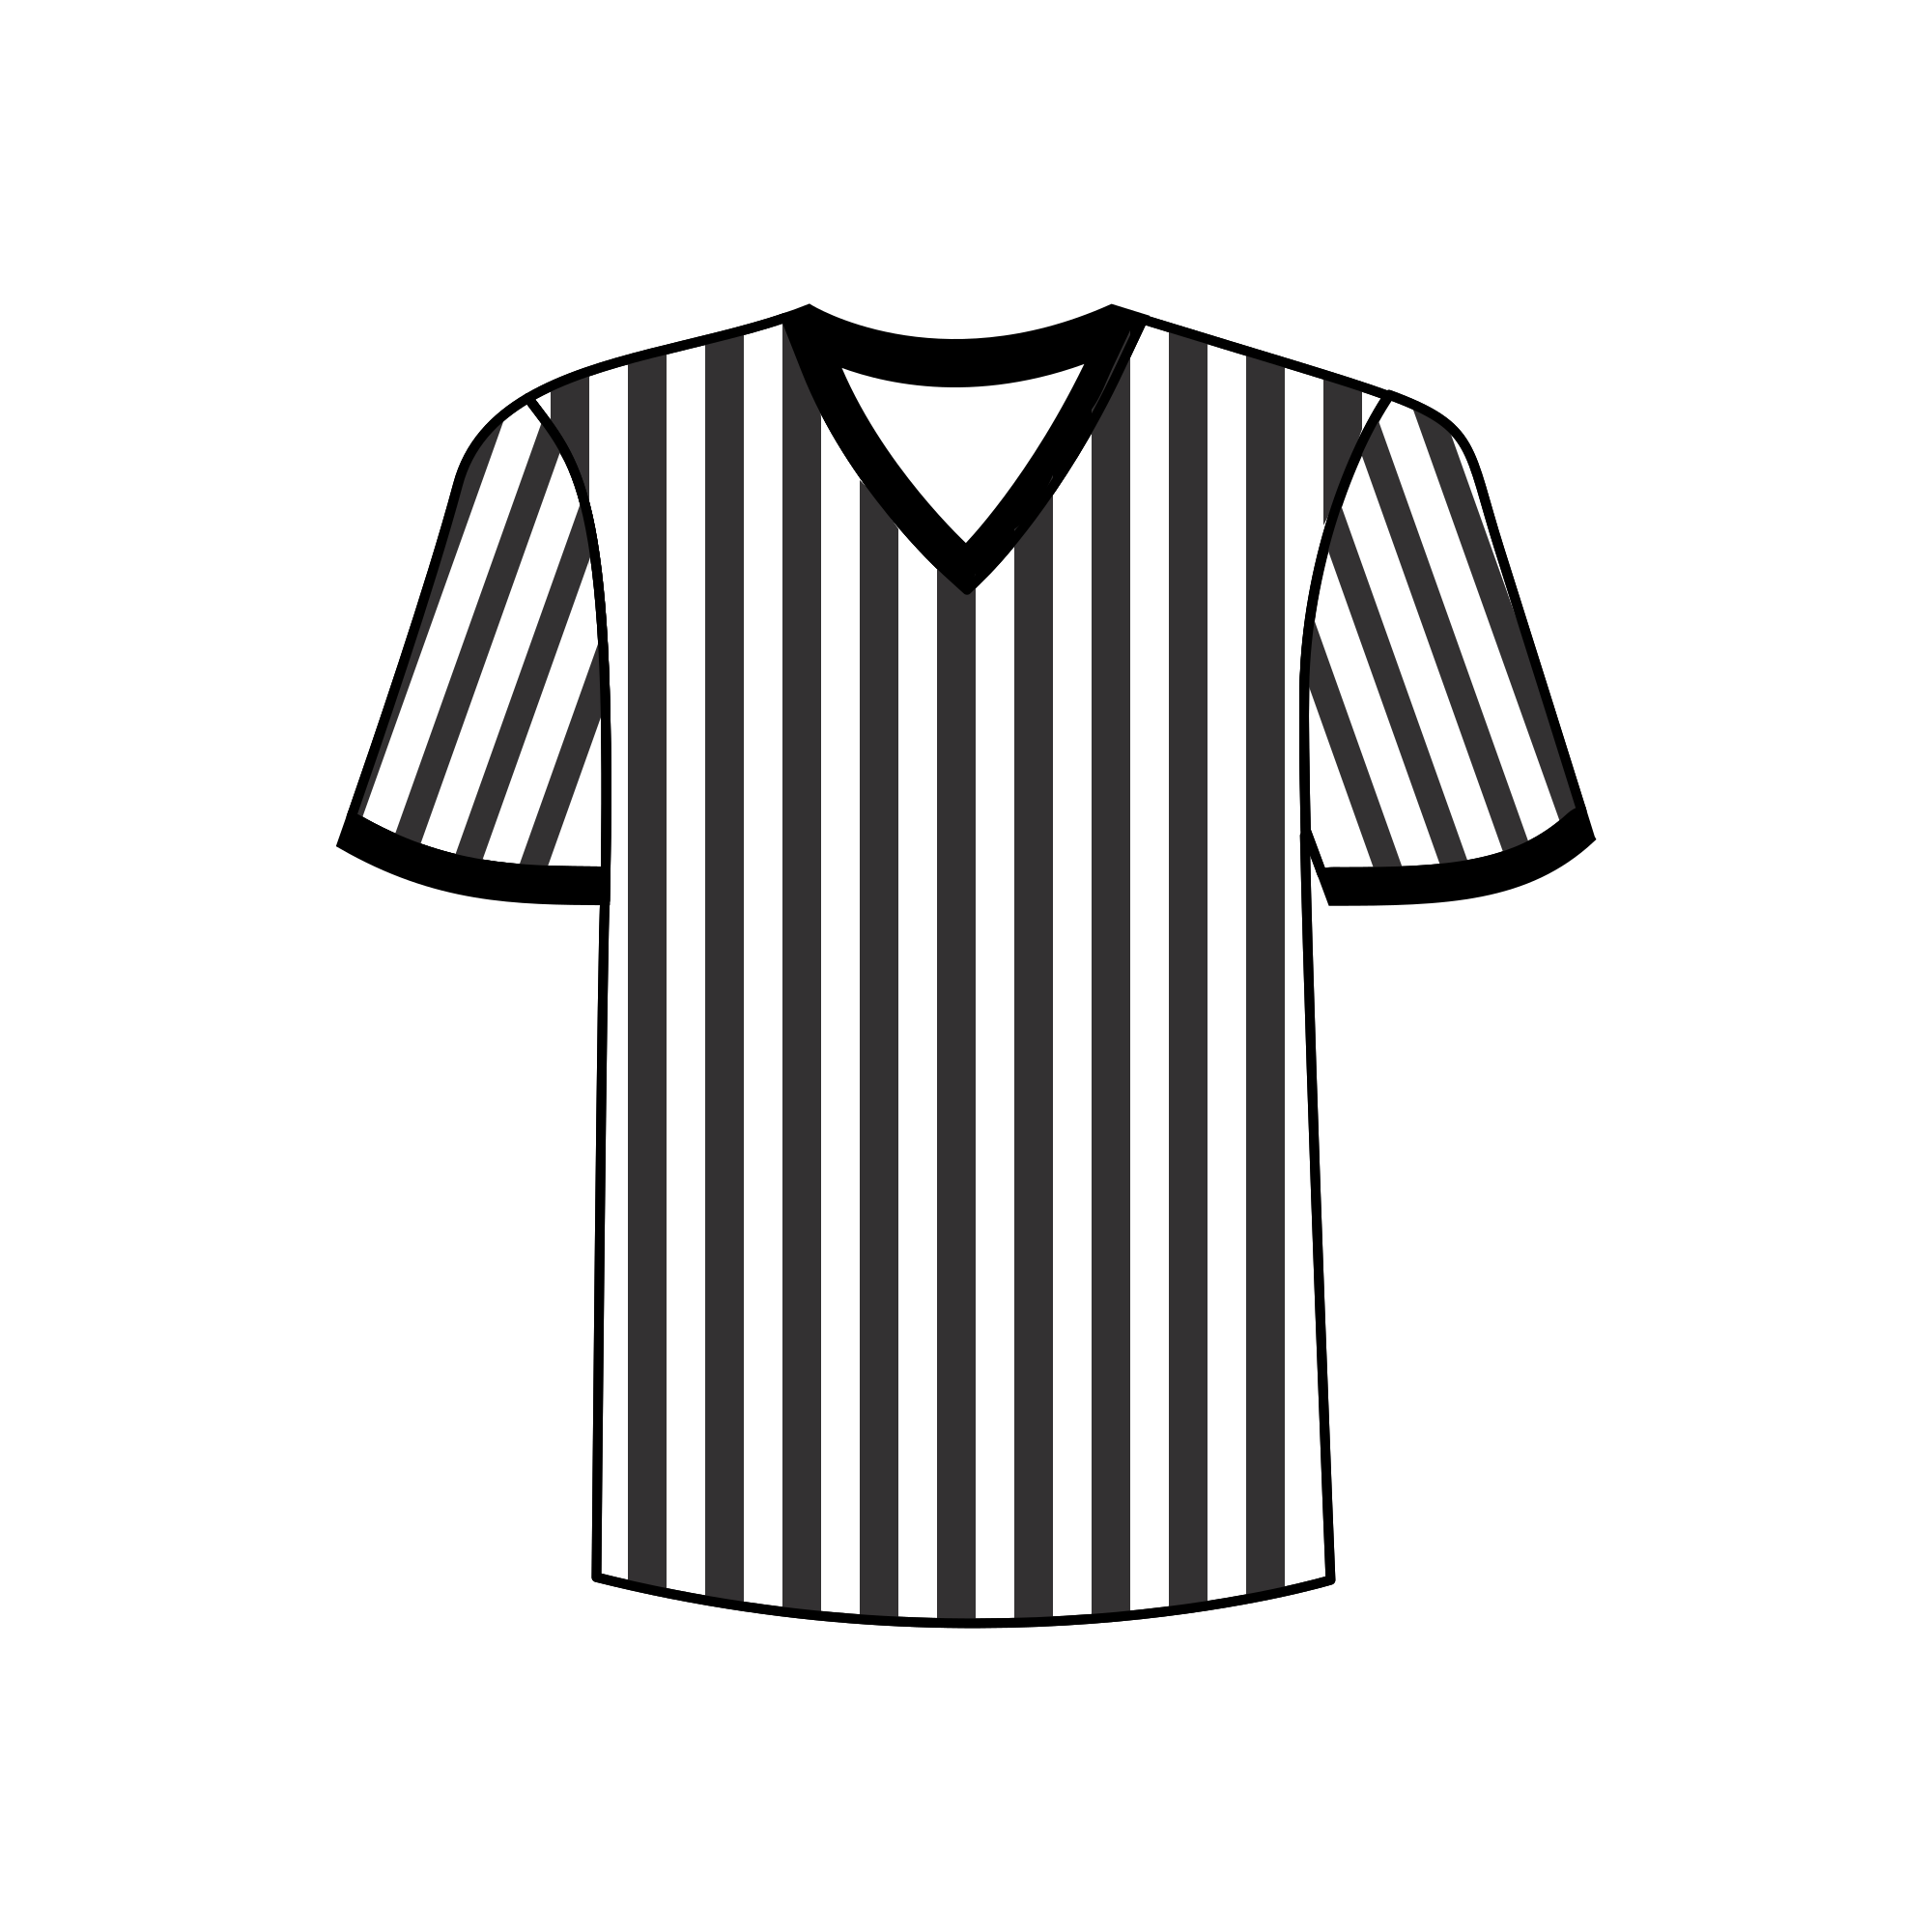 Shirts clipart referee, Shirts referee Transparent FREE for.